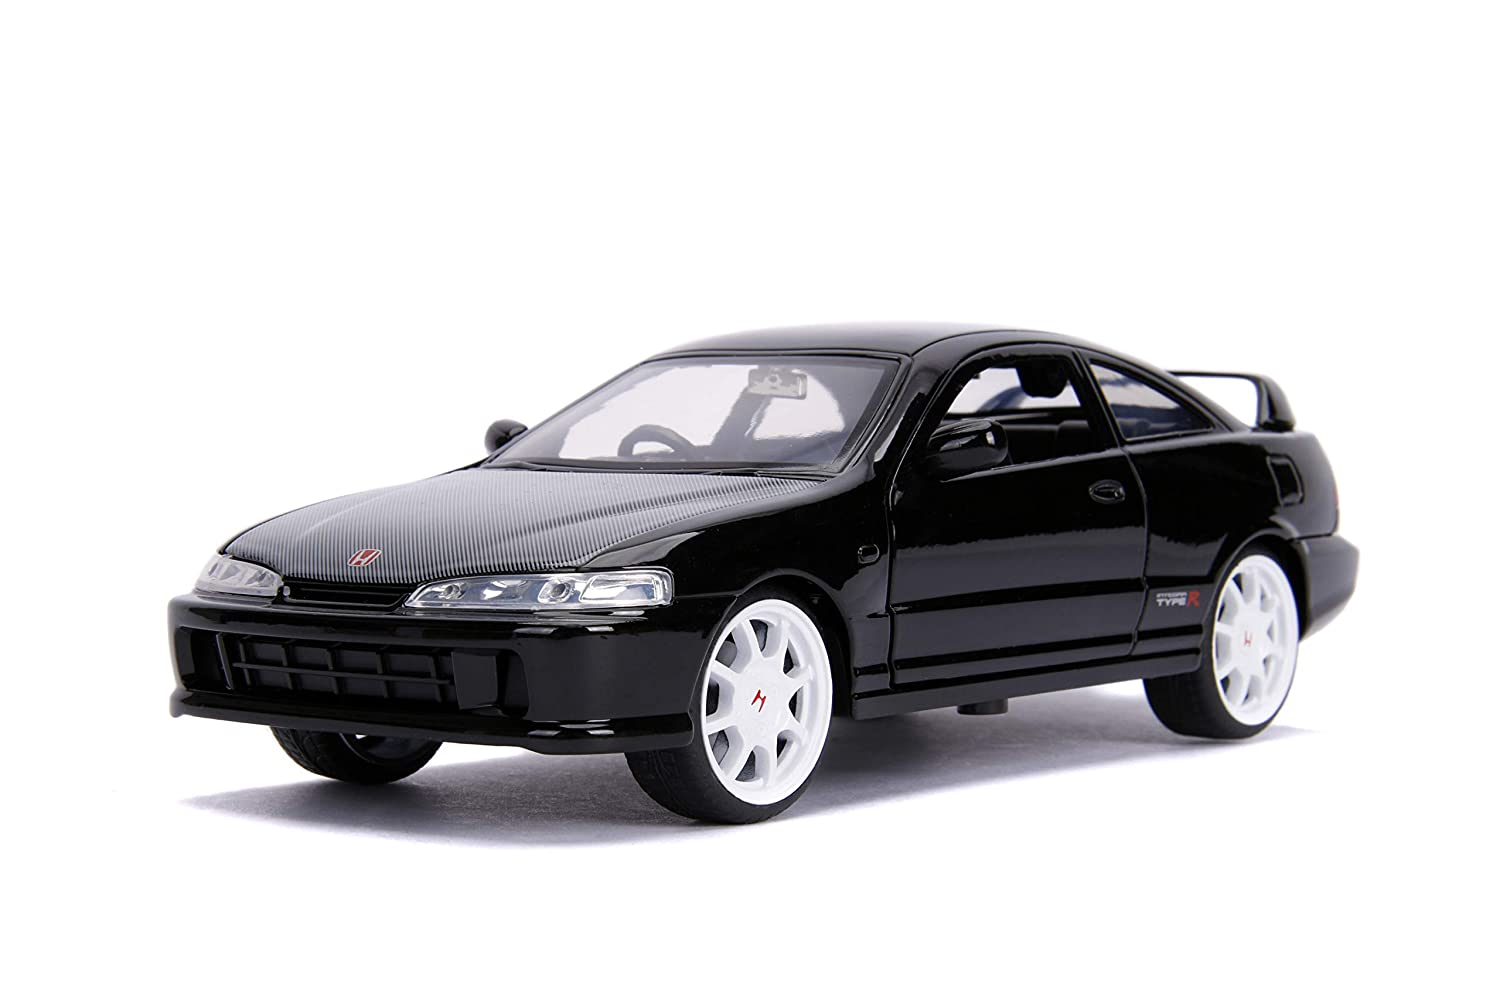 Jada JDM Tuners - 1995 Honda Integra Type R (Japan Spec) 1: 24 Scale Metals DIE-CAST Car, Glossy Black